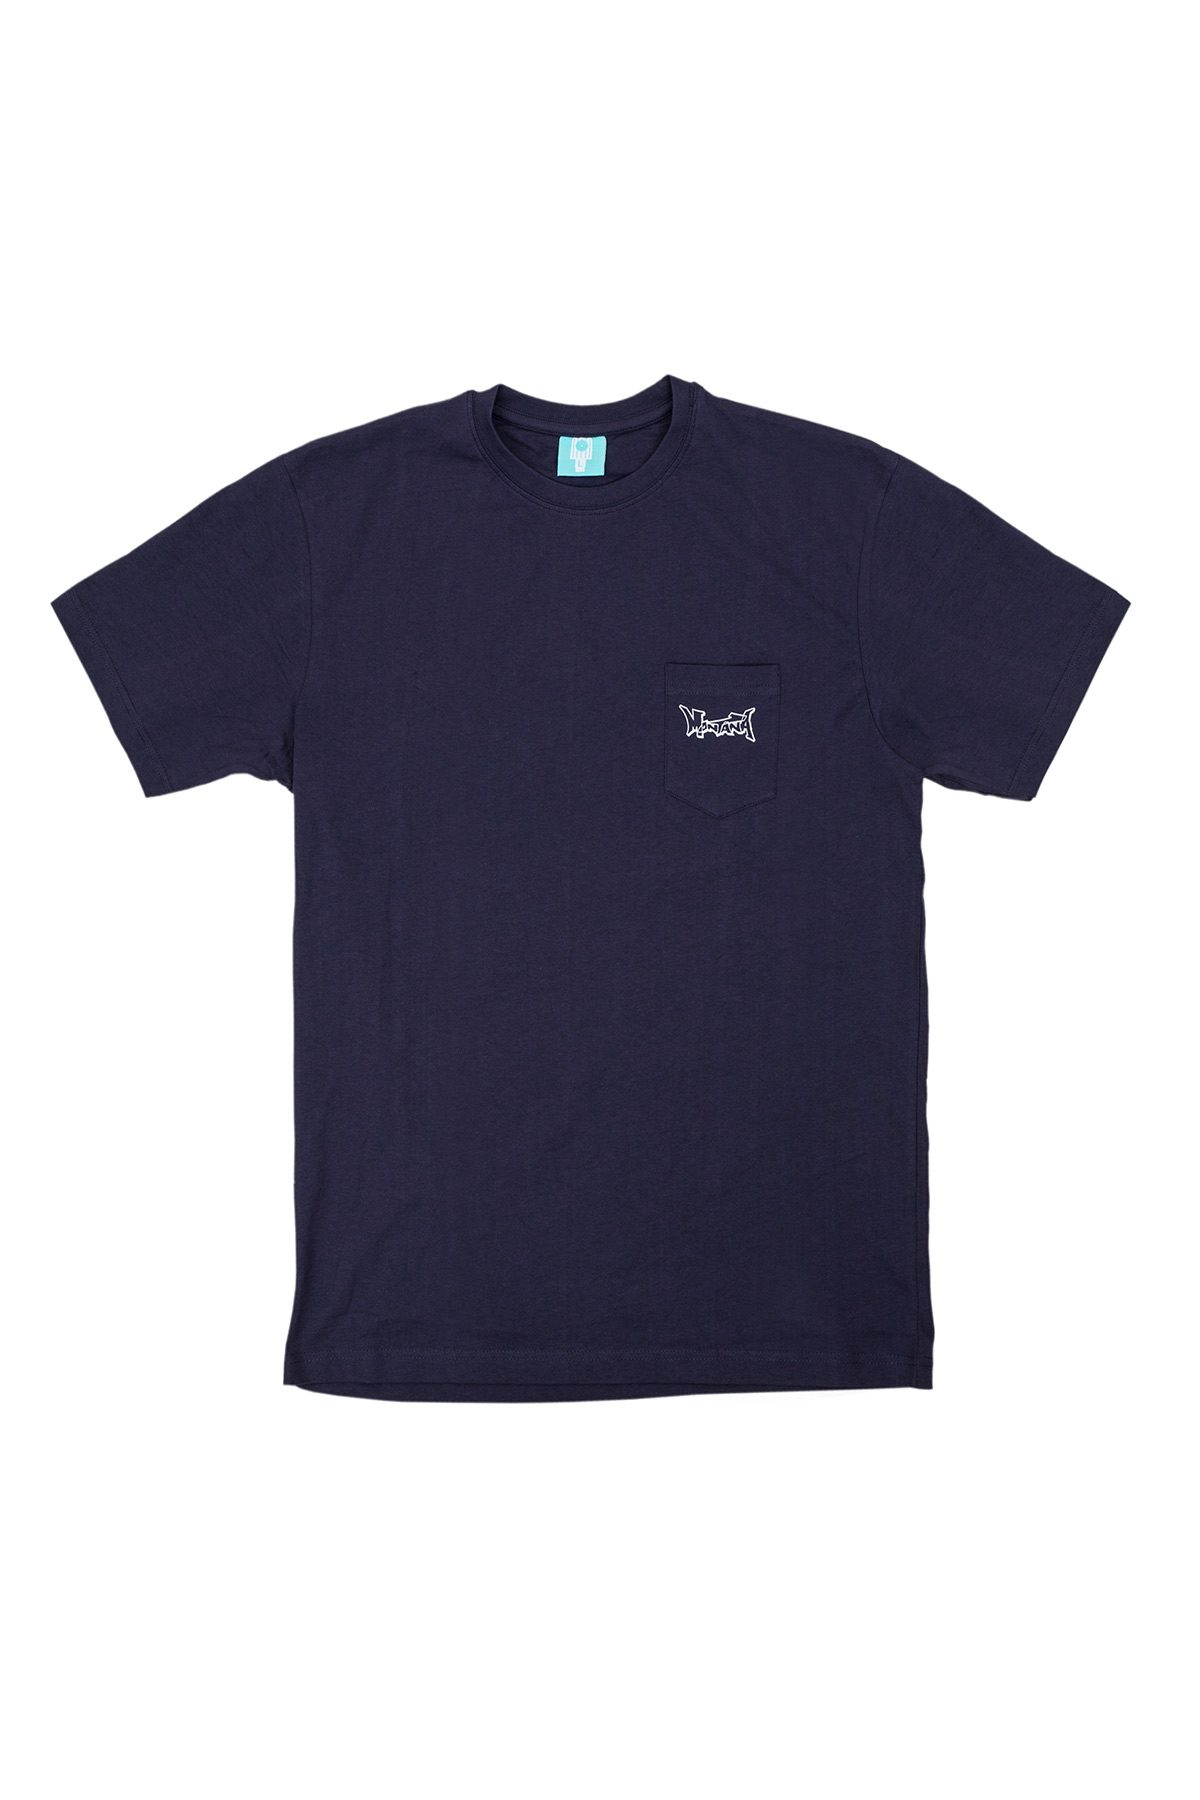 Montana POCKET T-Shirt